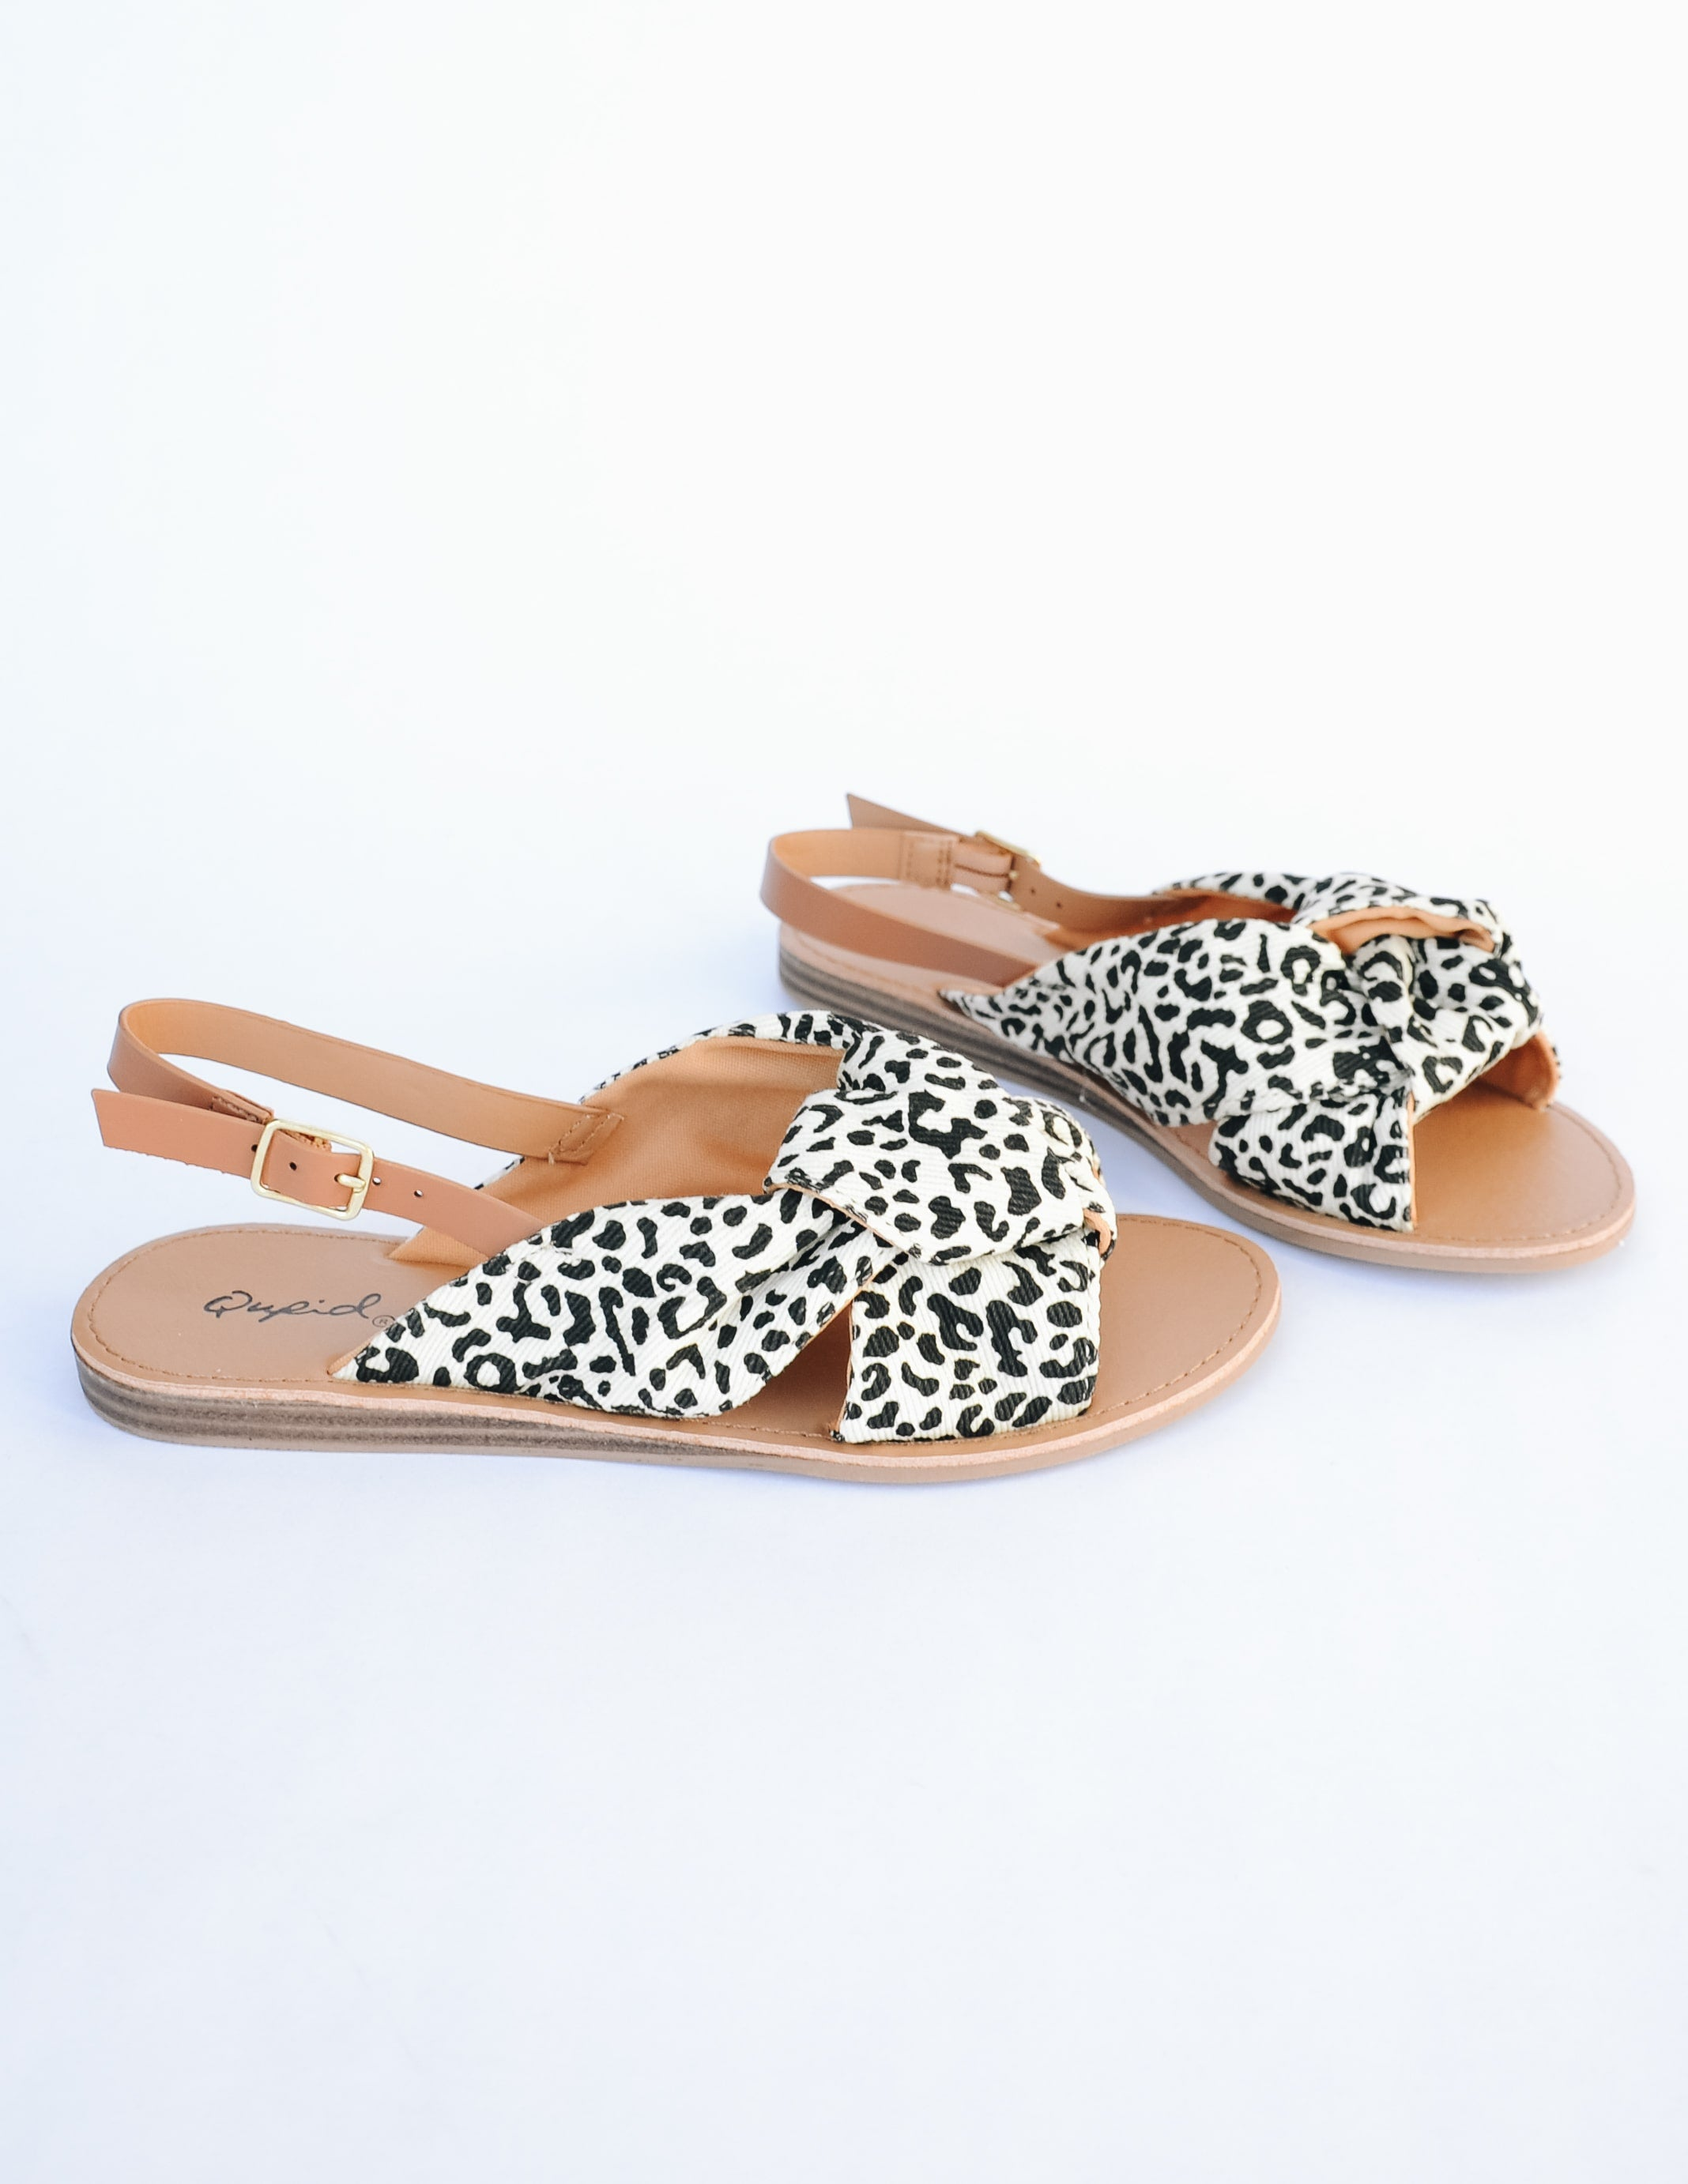 Run wild animal print sandal with tan insole and tan back strap